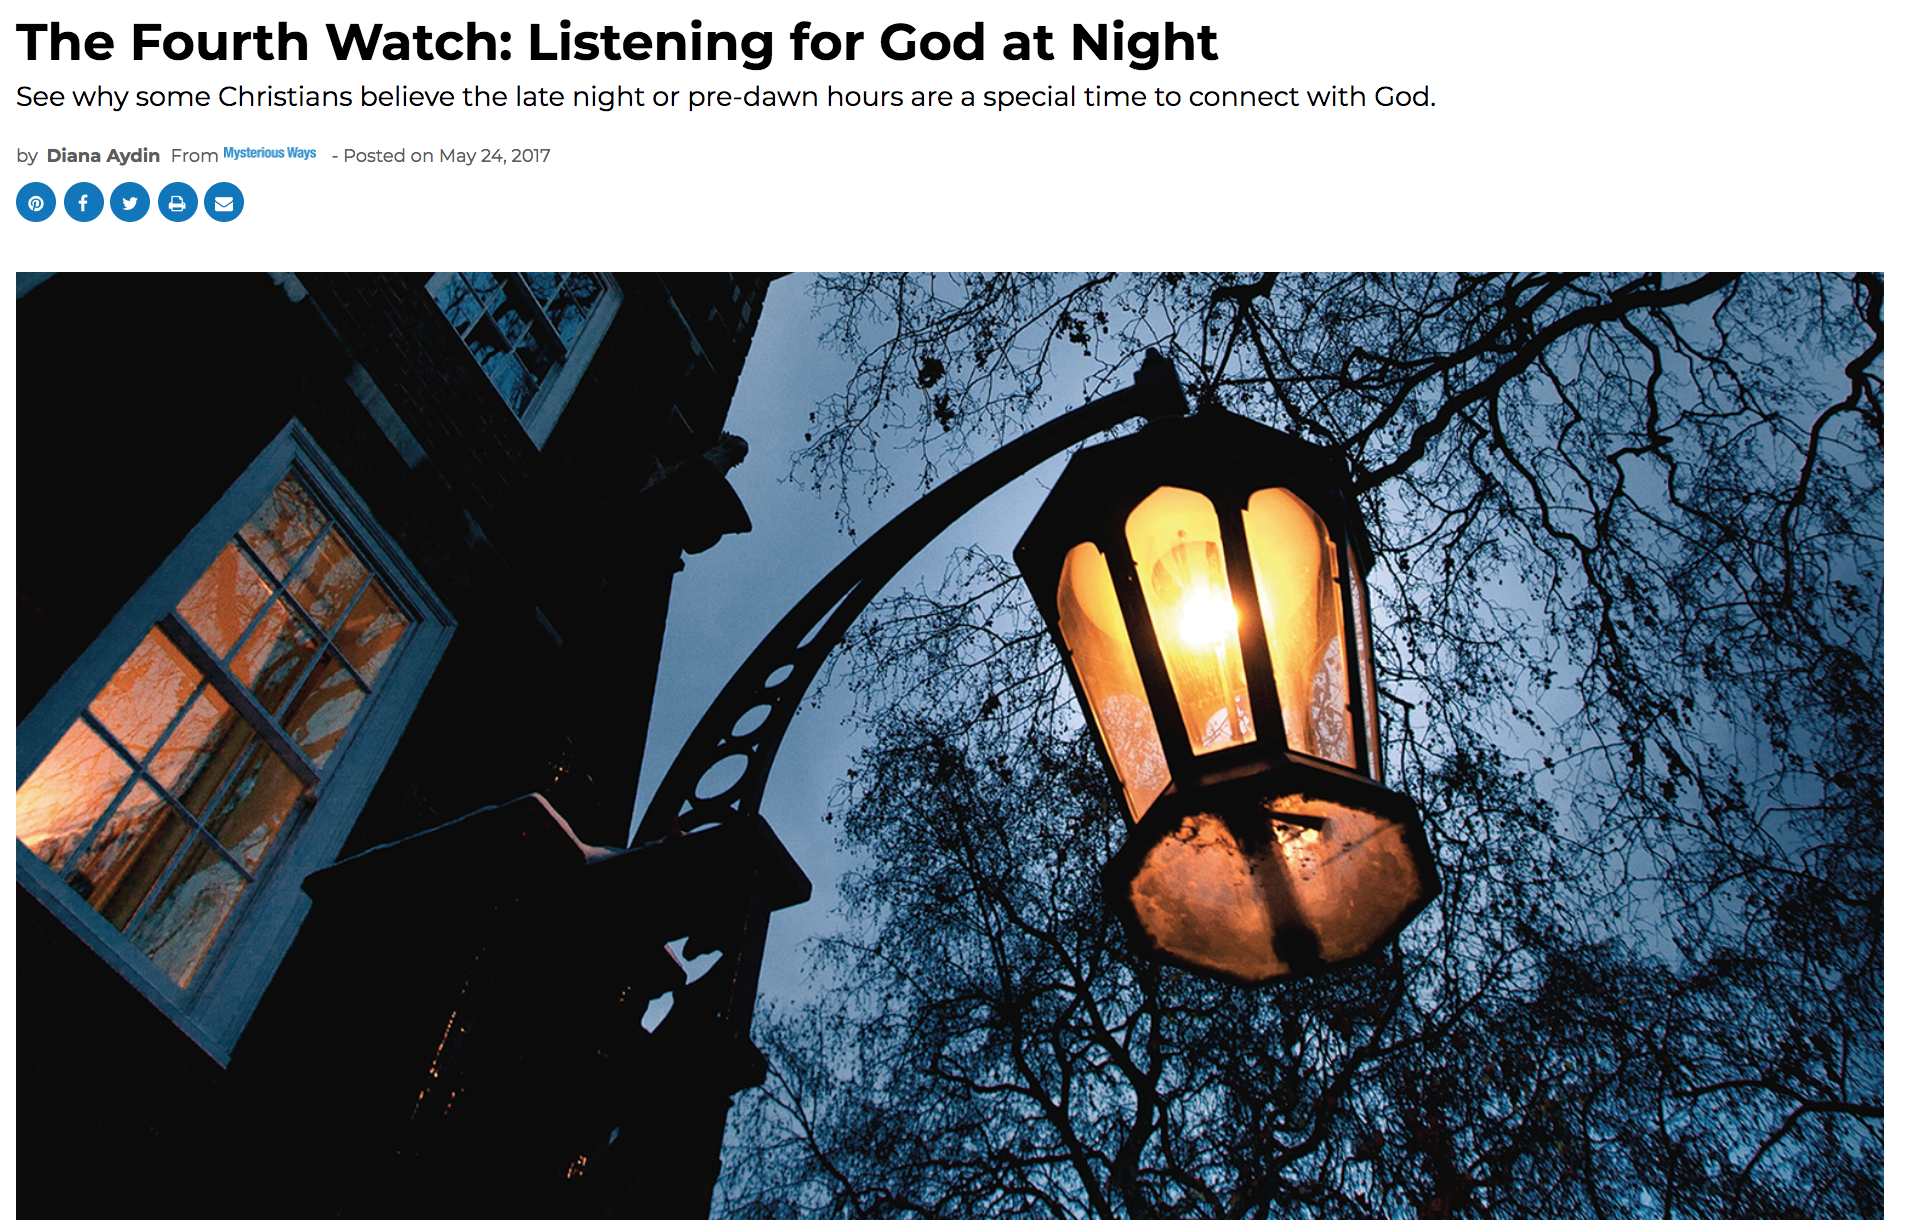 The Fourth Watch: Listening for God at Night